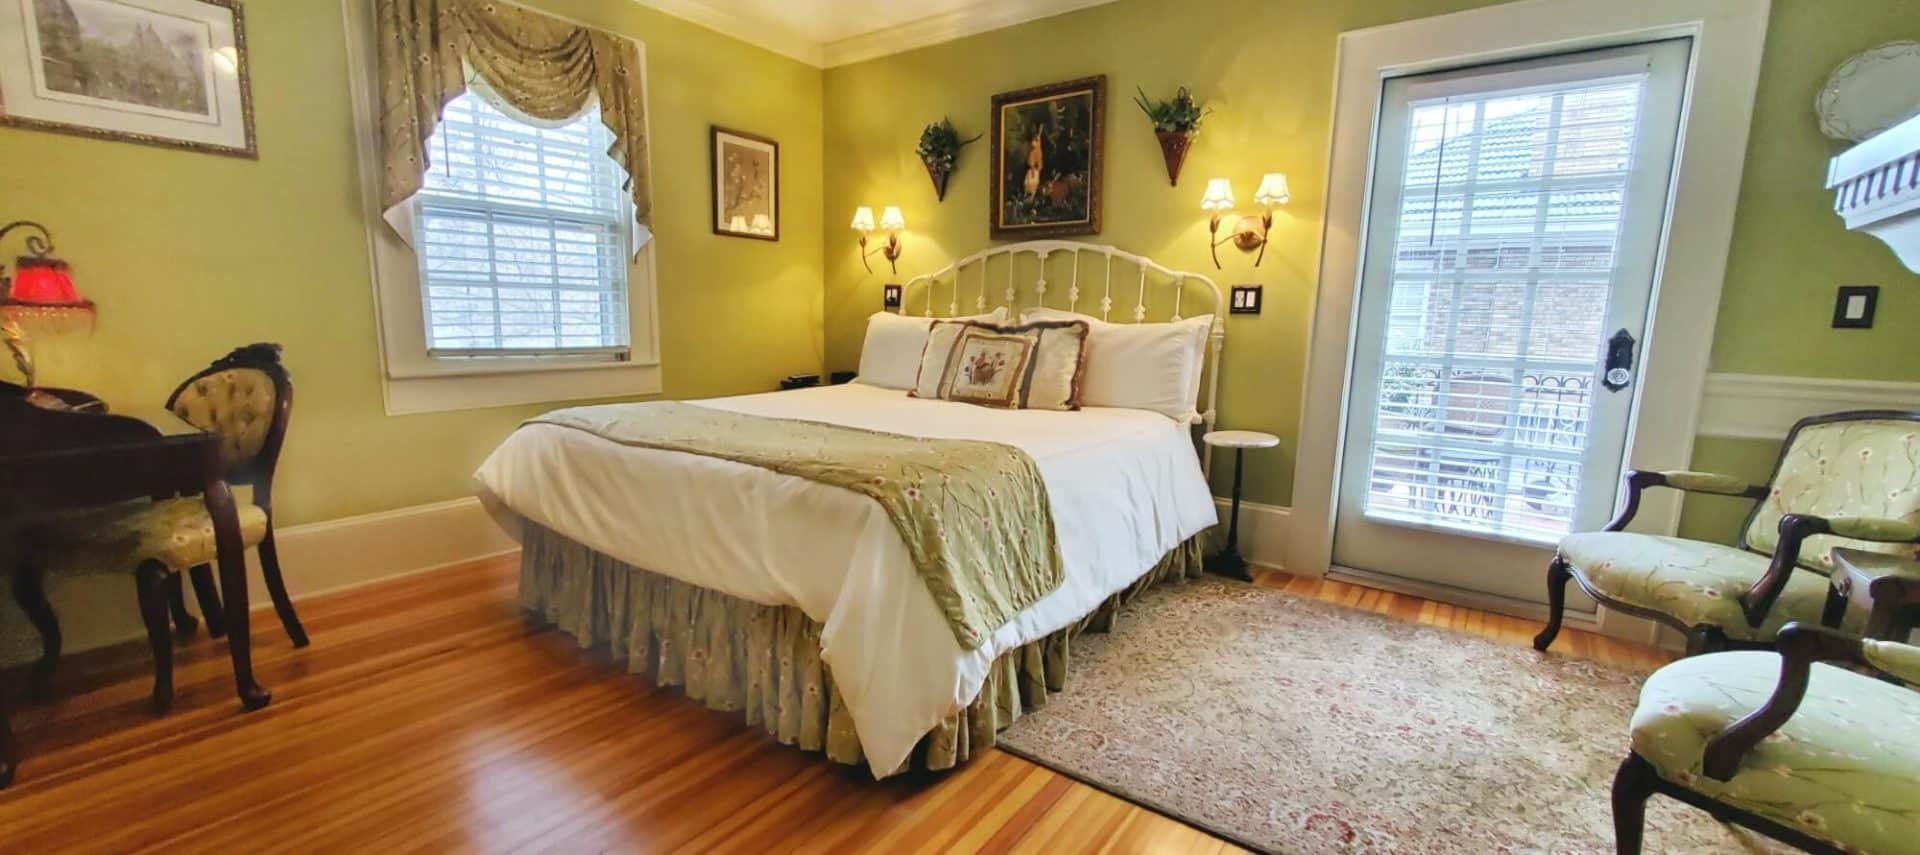 California king bed with two cushioned chairs near balcony door and fireplace.